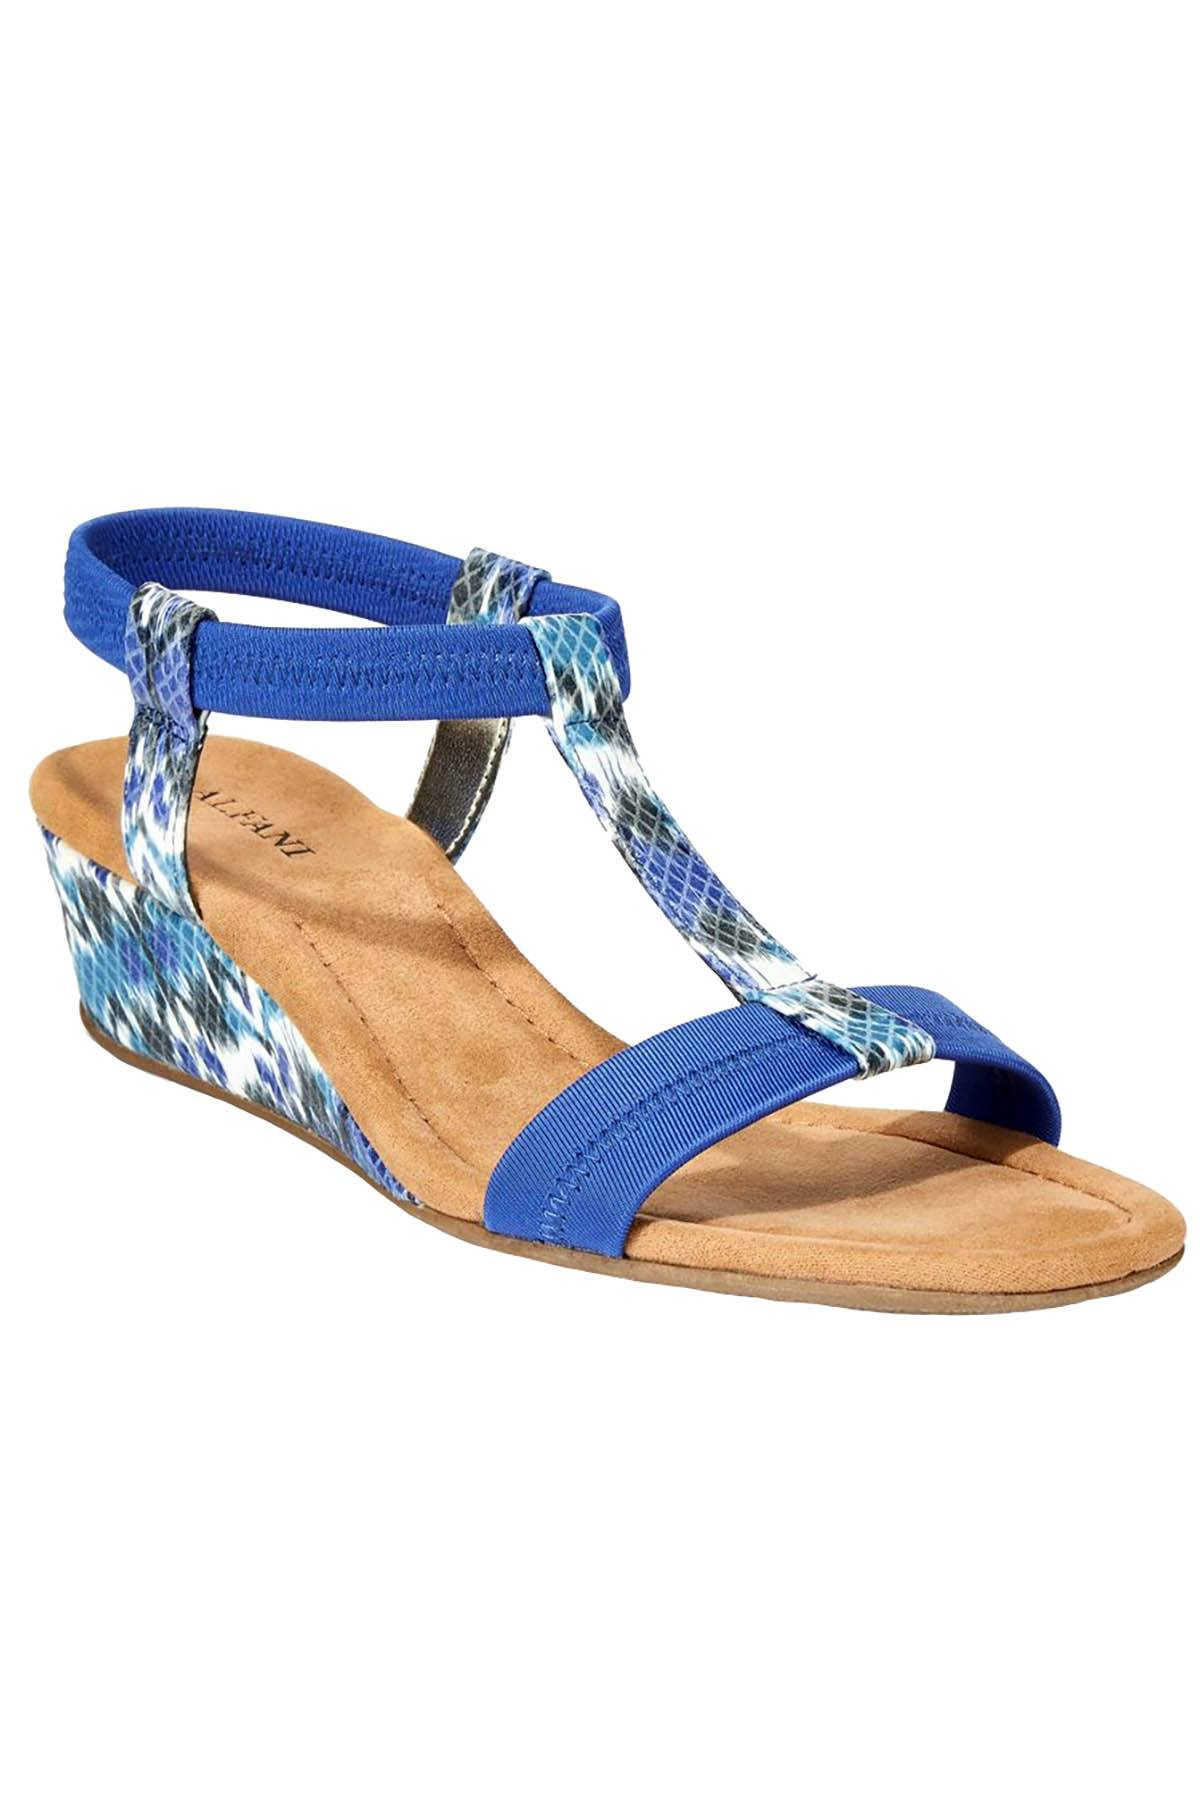 Alfani Blue-Ikat Step 'N Flex Voyage Wedge Sandals